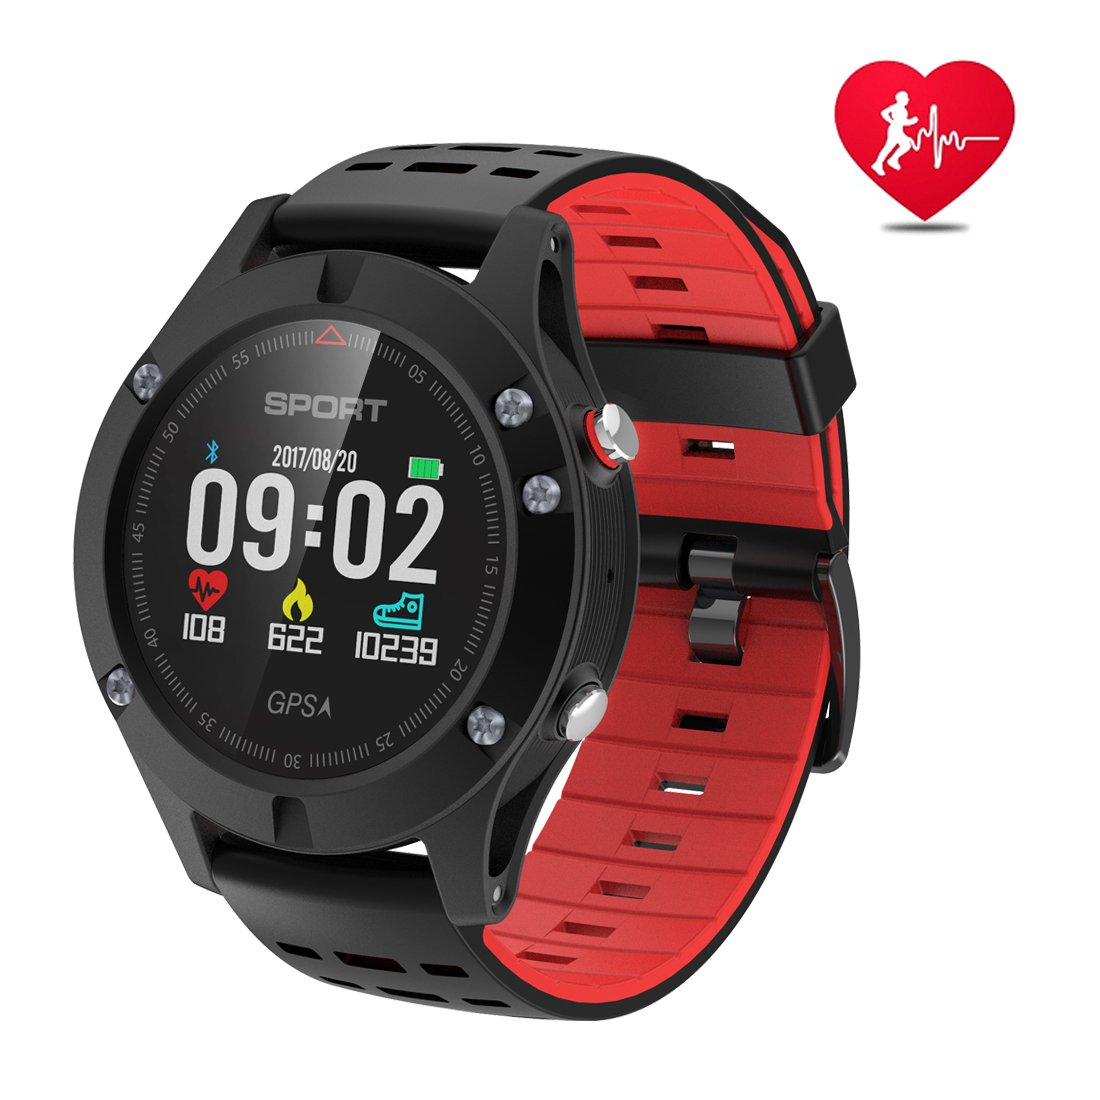 Smart watch,Sports Watch with Altimeter/Barometer/Thermometer and Built-in GPS, Fitness Tracker for Running,Hiking and Climbing,IP67 Waterproof Heart Rate Monitor for Men, Women and Adventurer by DTNO.I